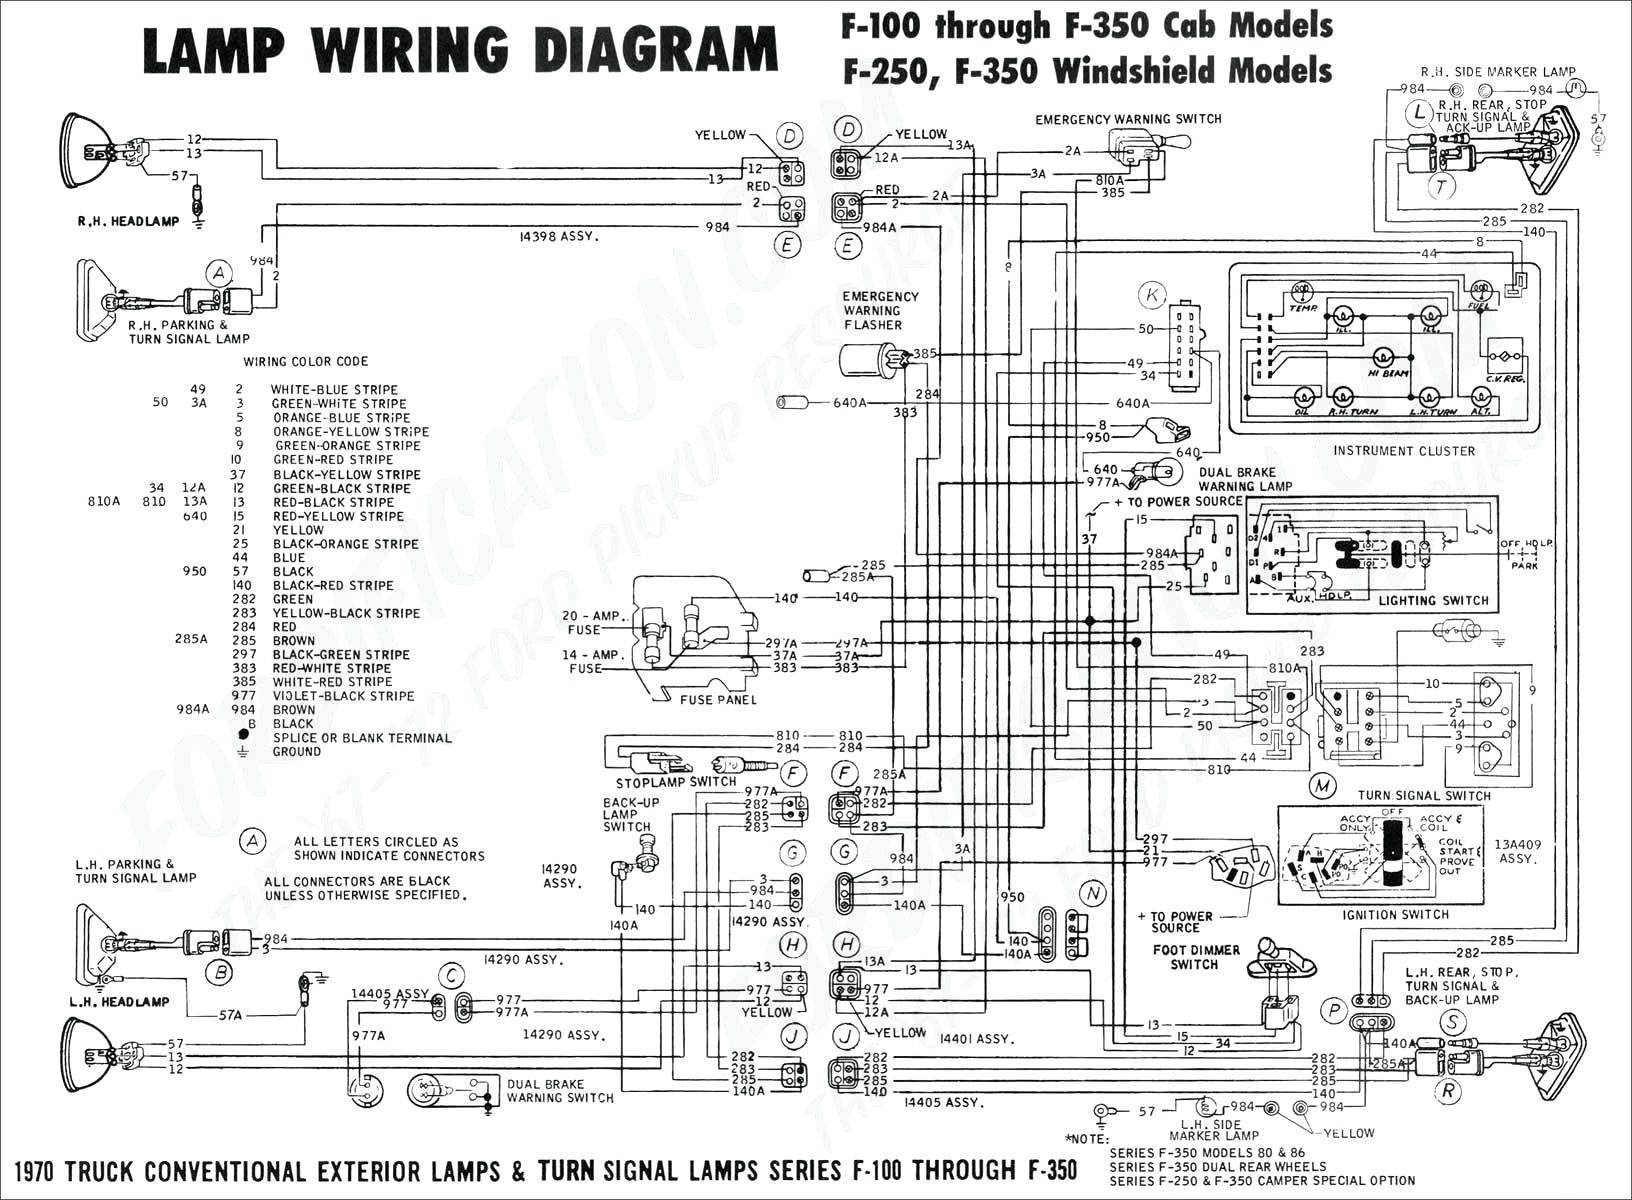 M2 Tail Light Wiring - Wiring Diagram Section M Exterior Lighting Wiring Diagram on